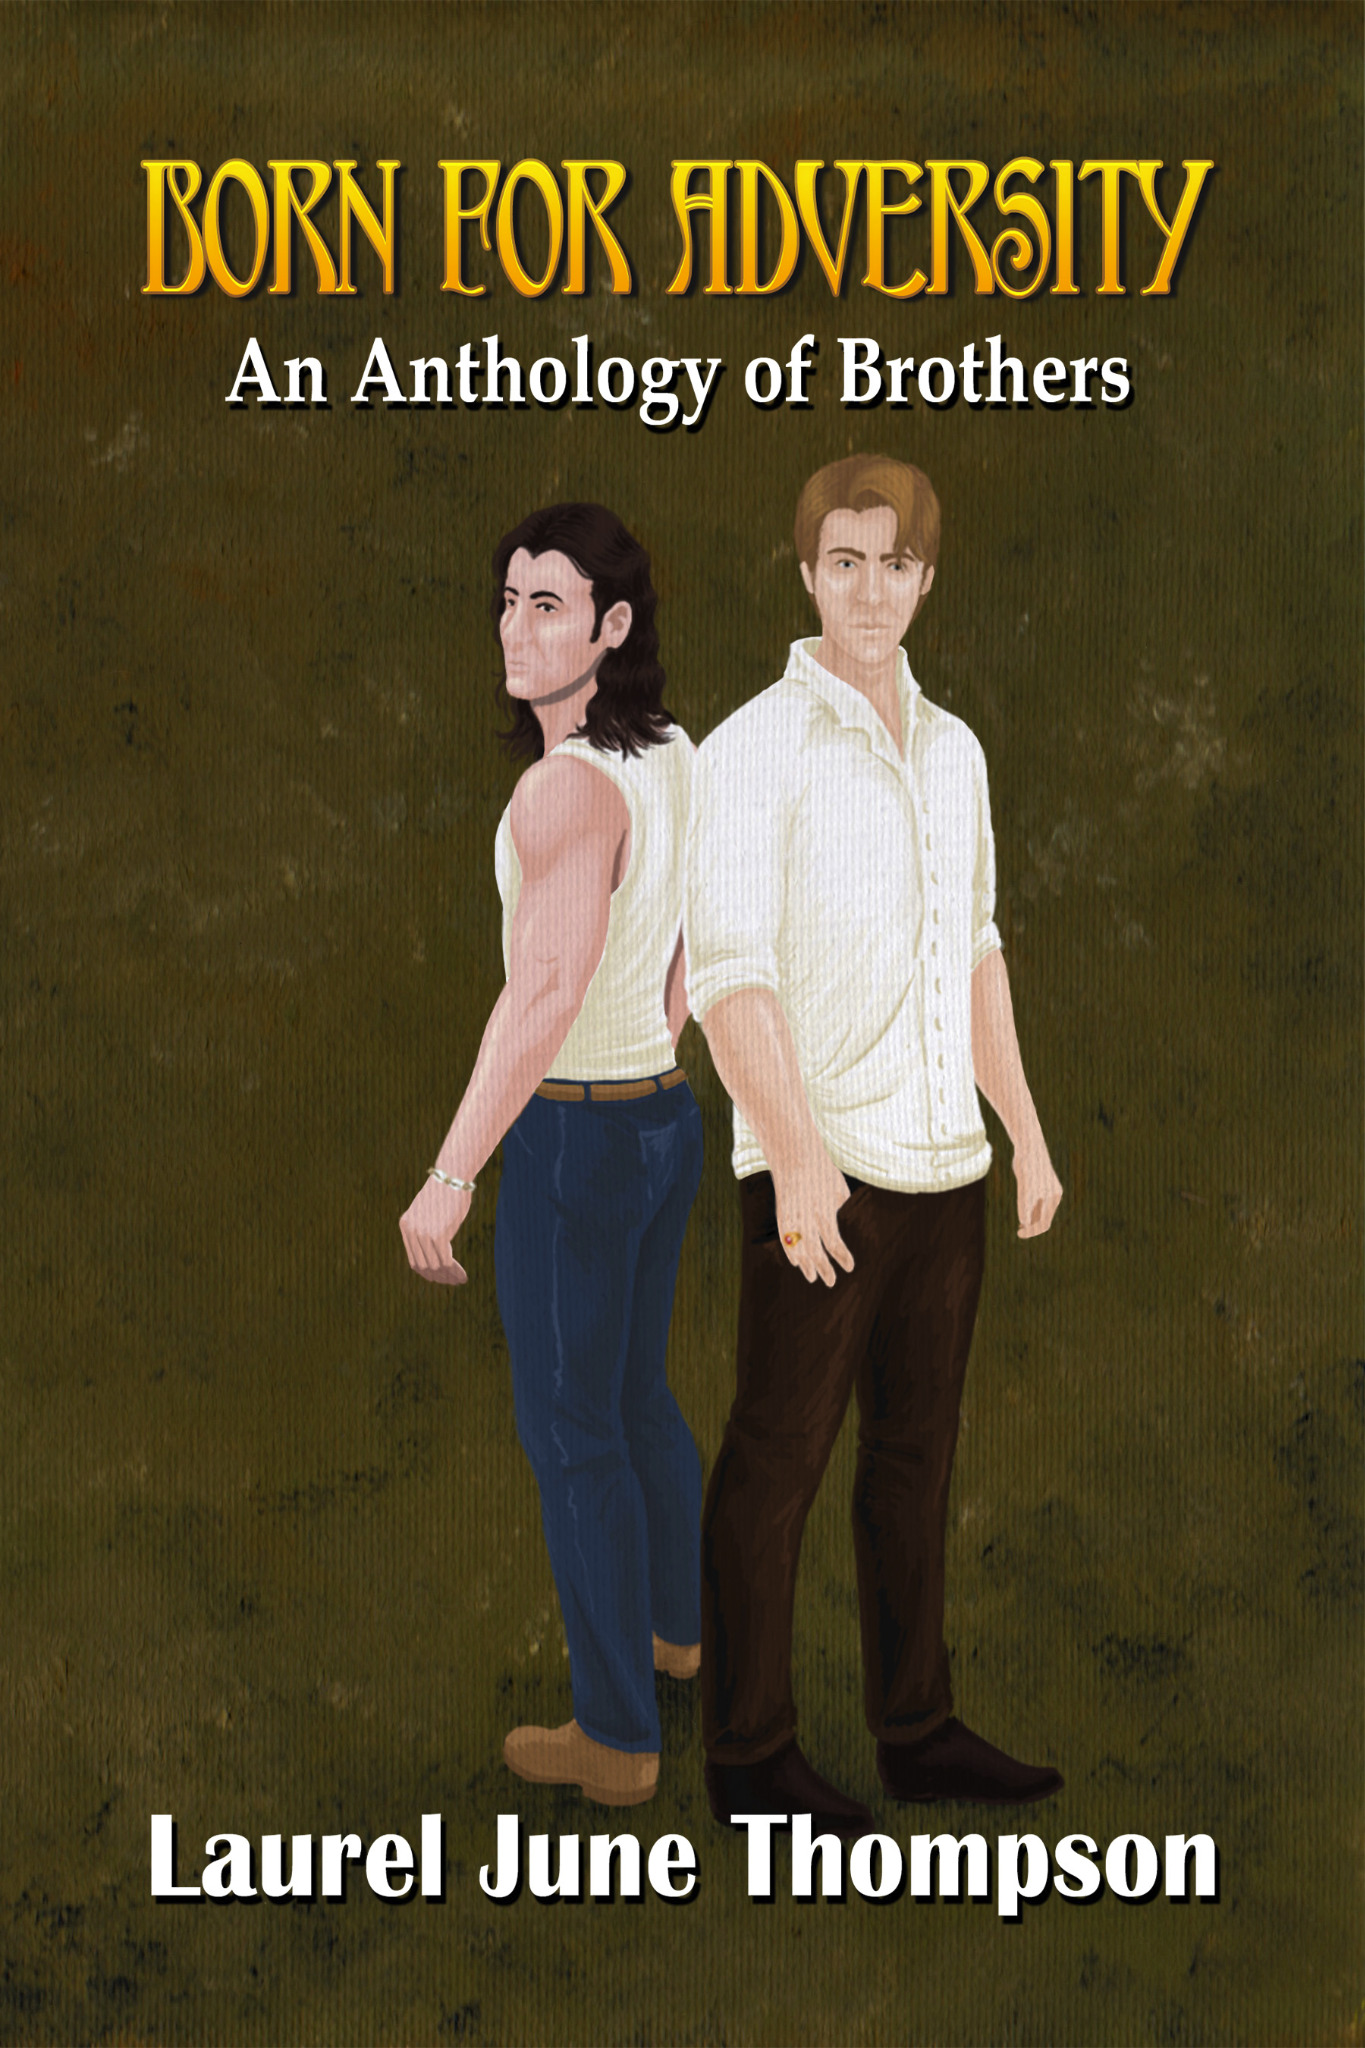 Born for Adversity - An Anthology of Brothers